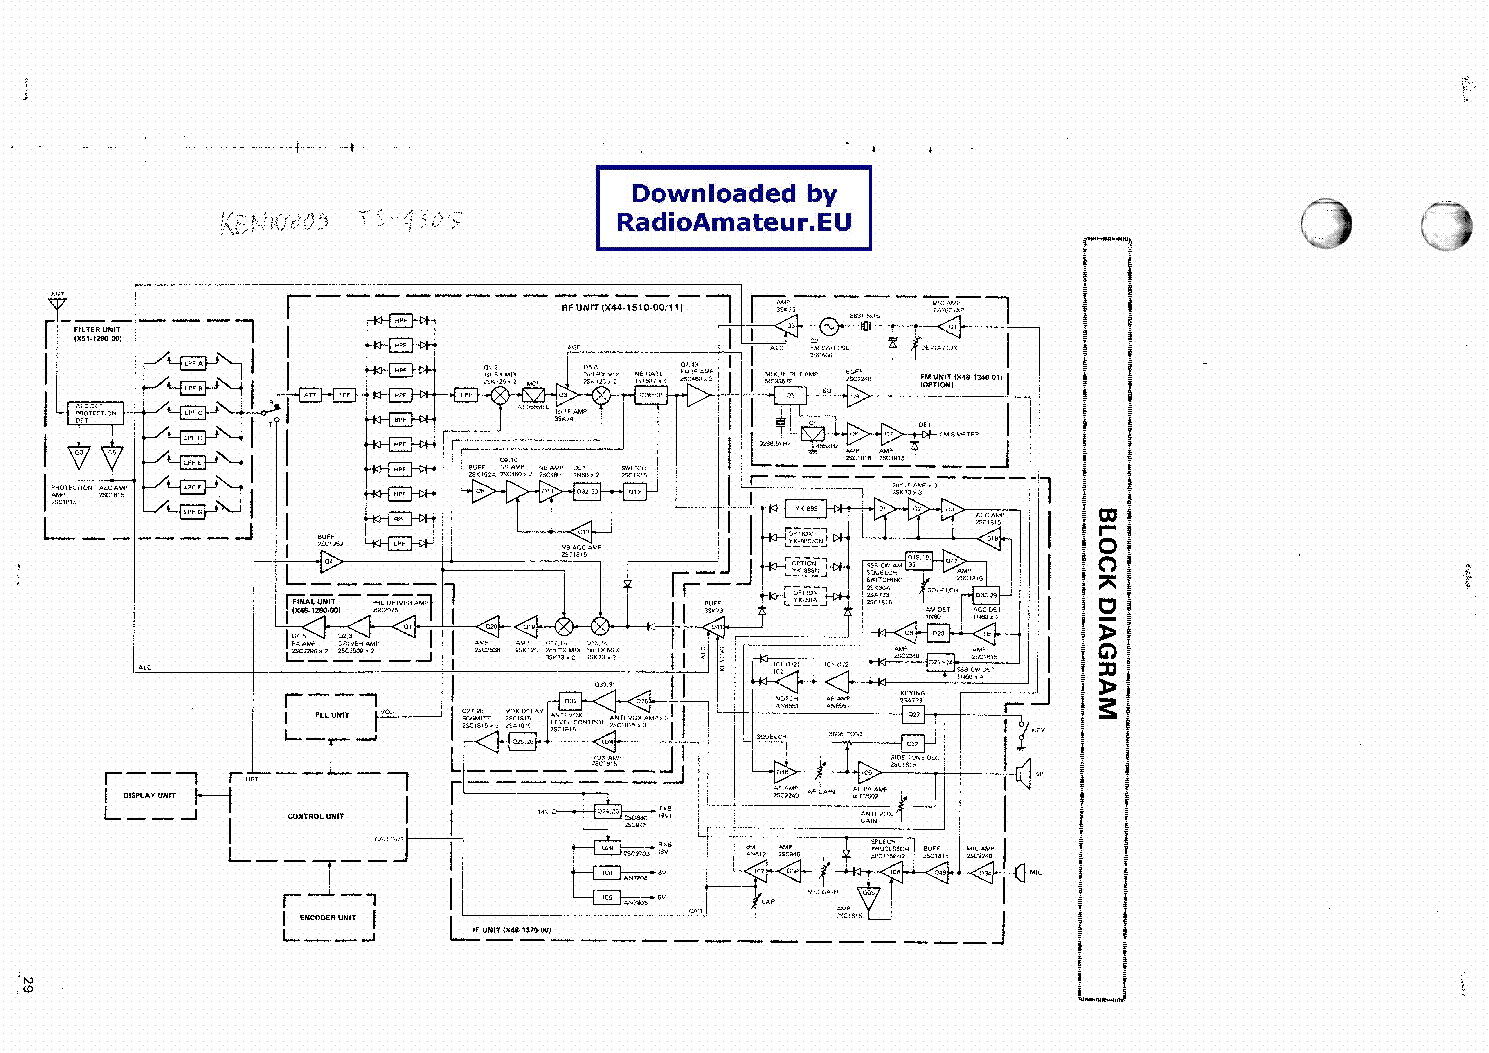 Kenwood Ts430s Service Manual Download Schematics Eeprom Repair Wiring Diagram 1st Page